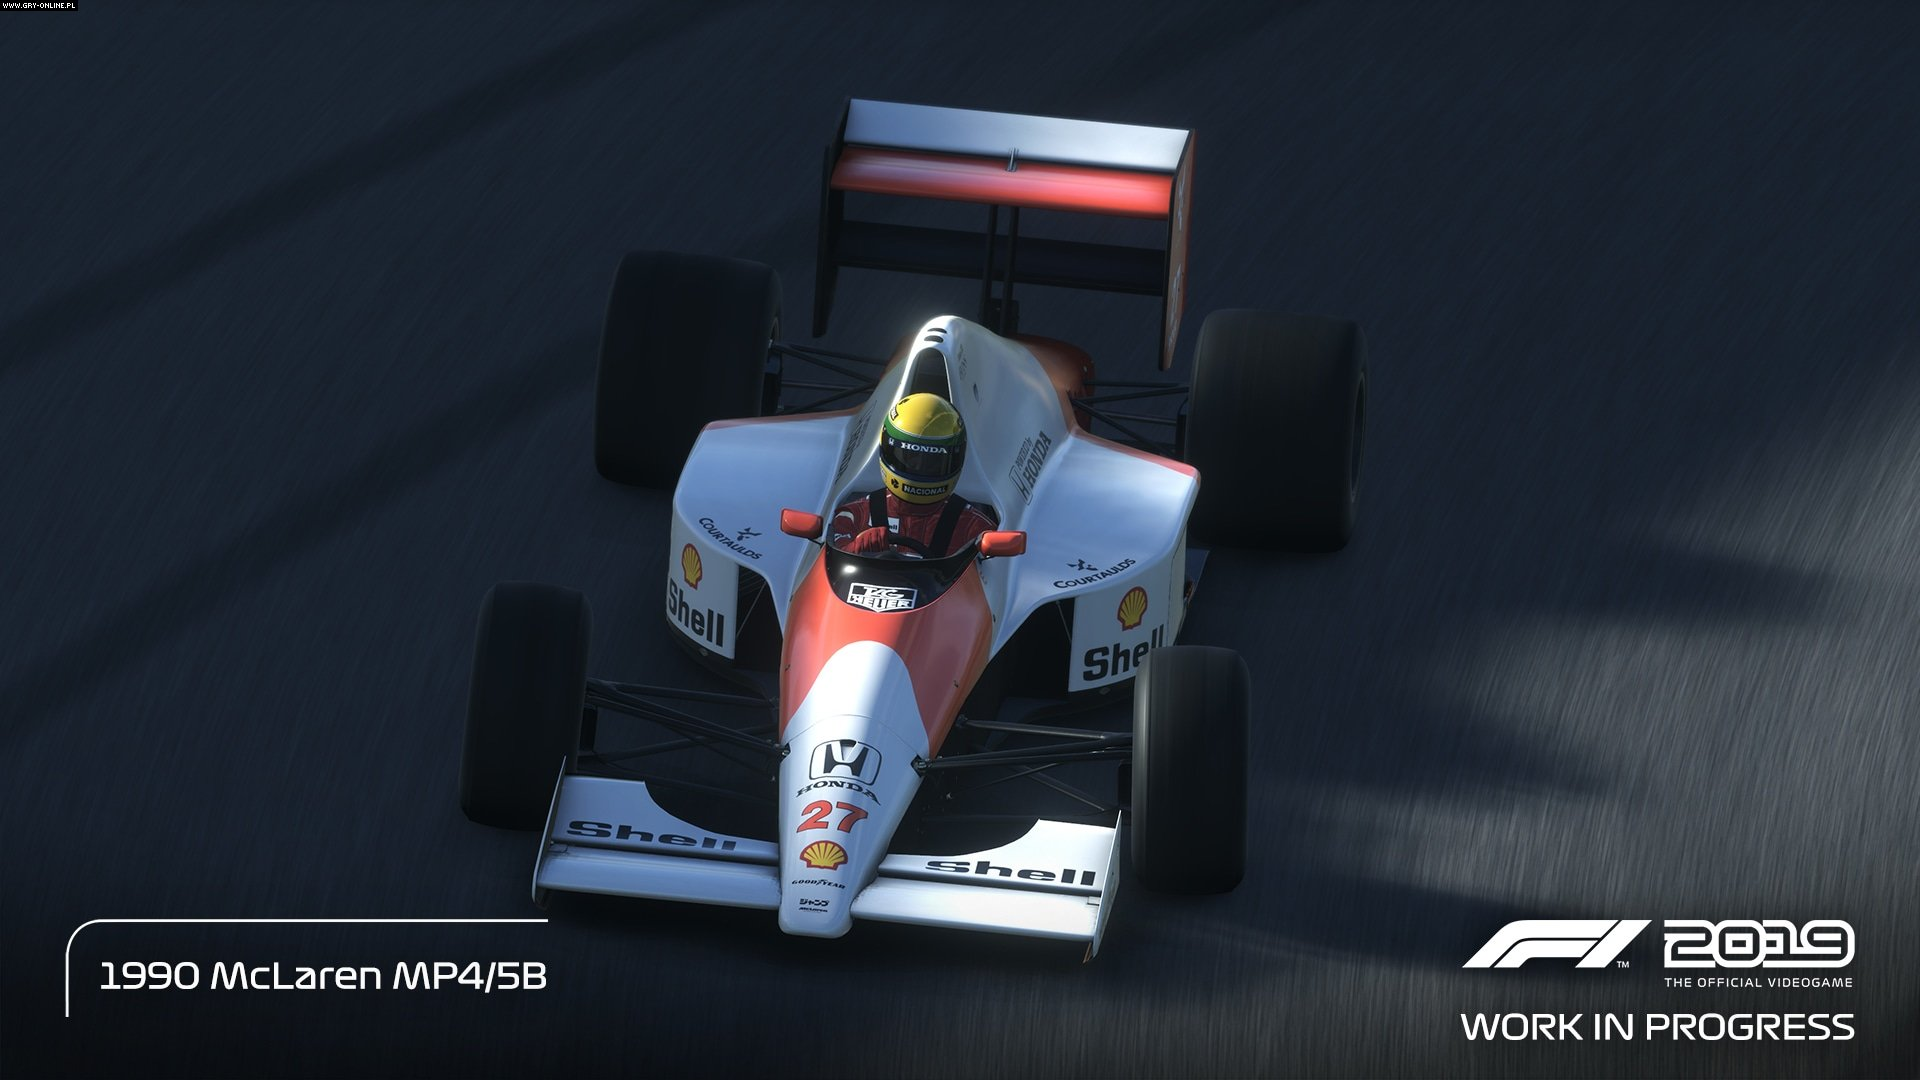 F1 2019 PC, PS4, XONE Games Image 89/104, Codemasters Software